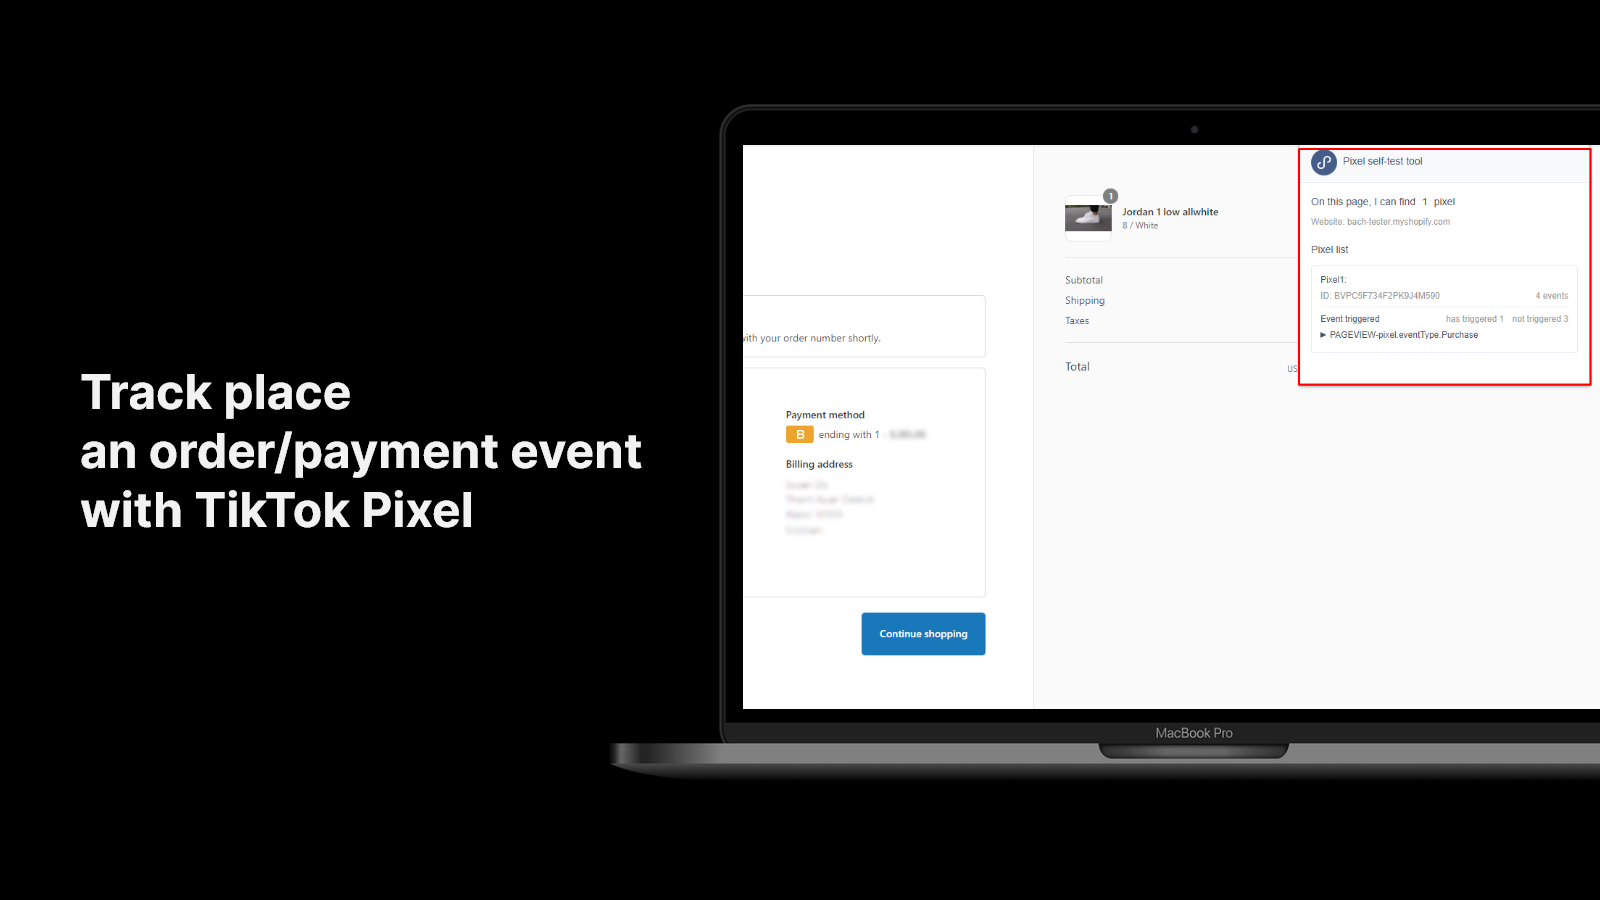 Track place an order/payment event with TikTok Pixel